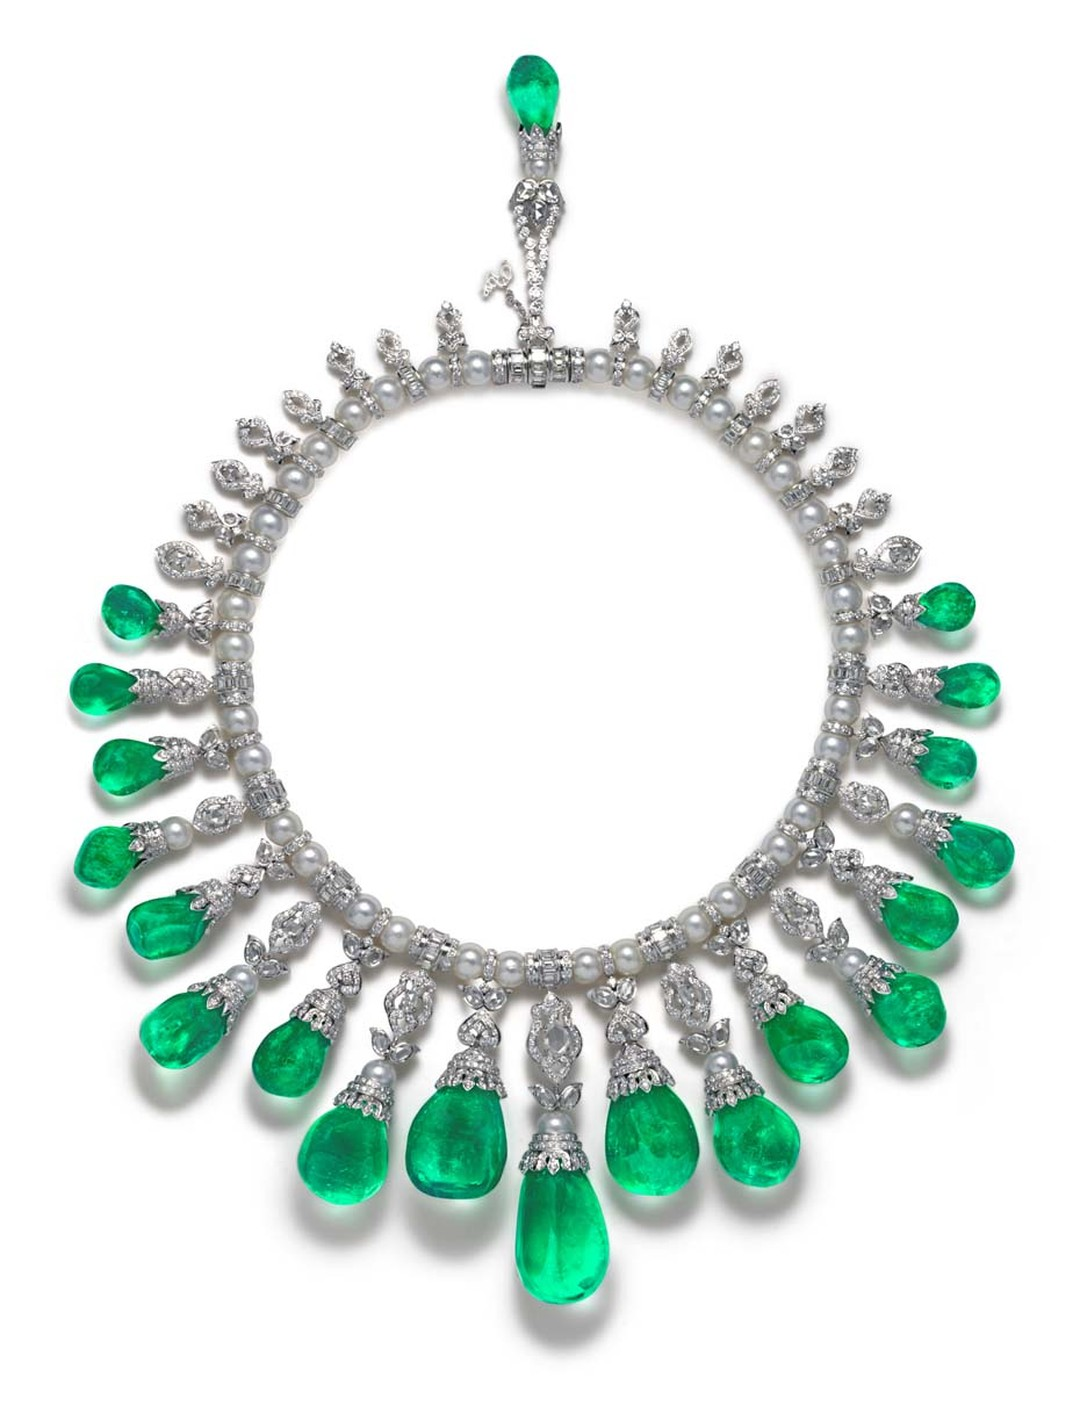 The House of Rose's La Reina necklace is part of a suite that also includes a pair of earrings. Combined they feature 23 unique baroque emeralds as well as White South Sea pearls and pear shaped, rose cut, round brilliant cut and baguette diamonds studded